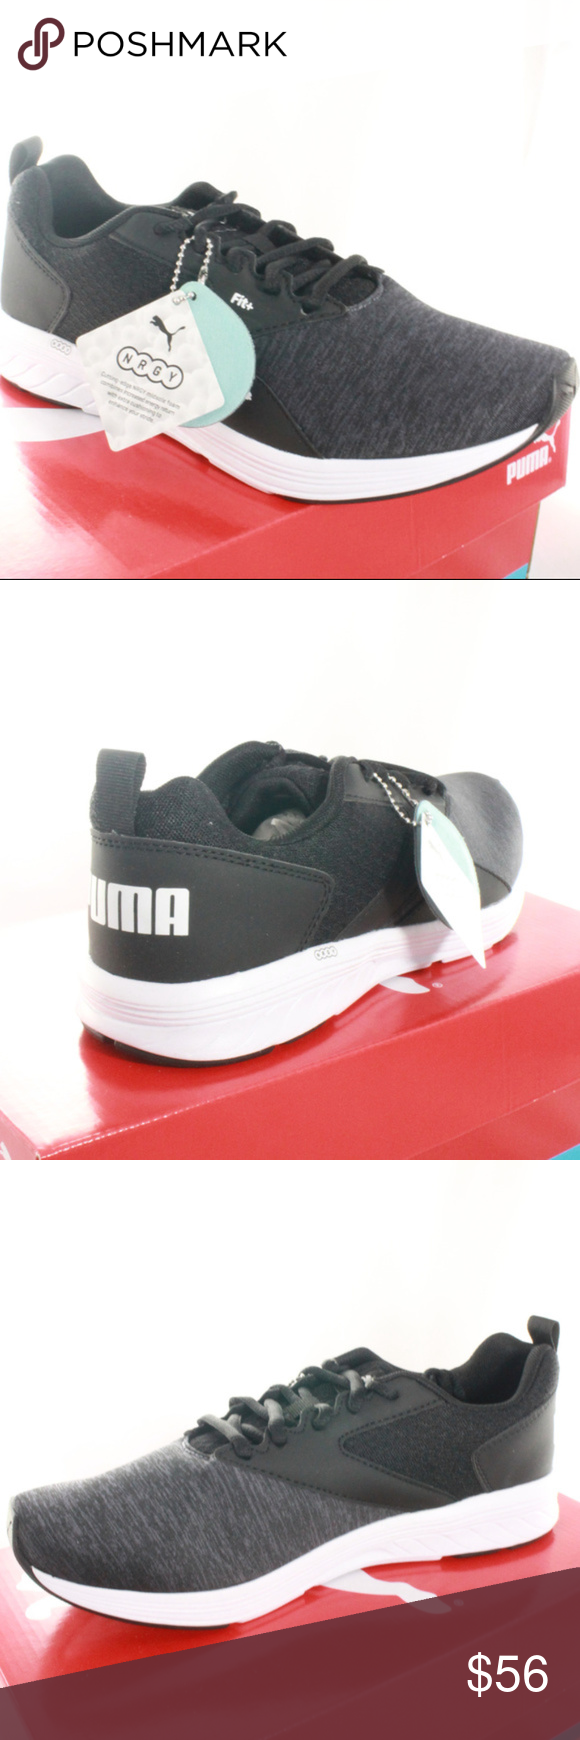 b5d3ef90fb1 CLEARANCE PUMA NRGY Comet Blck Unisex Running Shoe All new running shoes